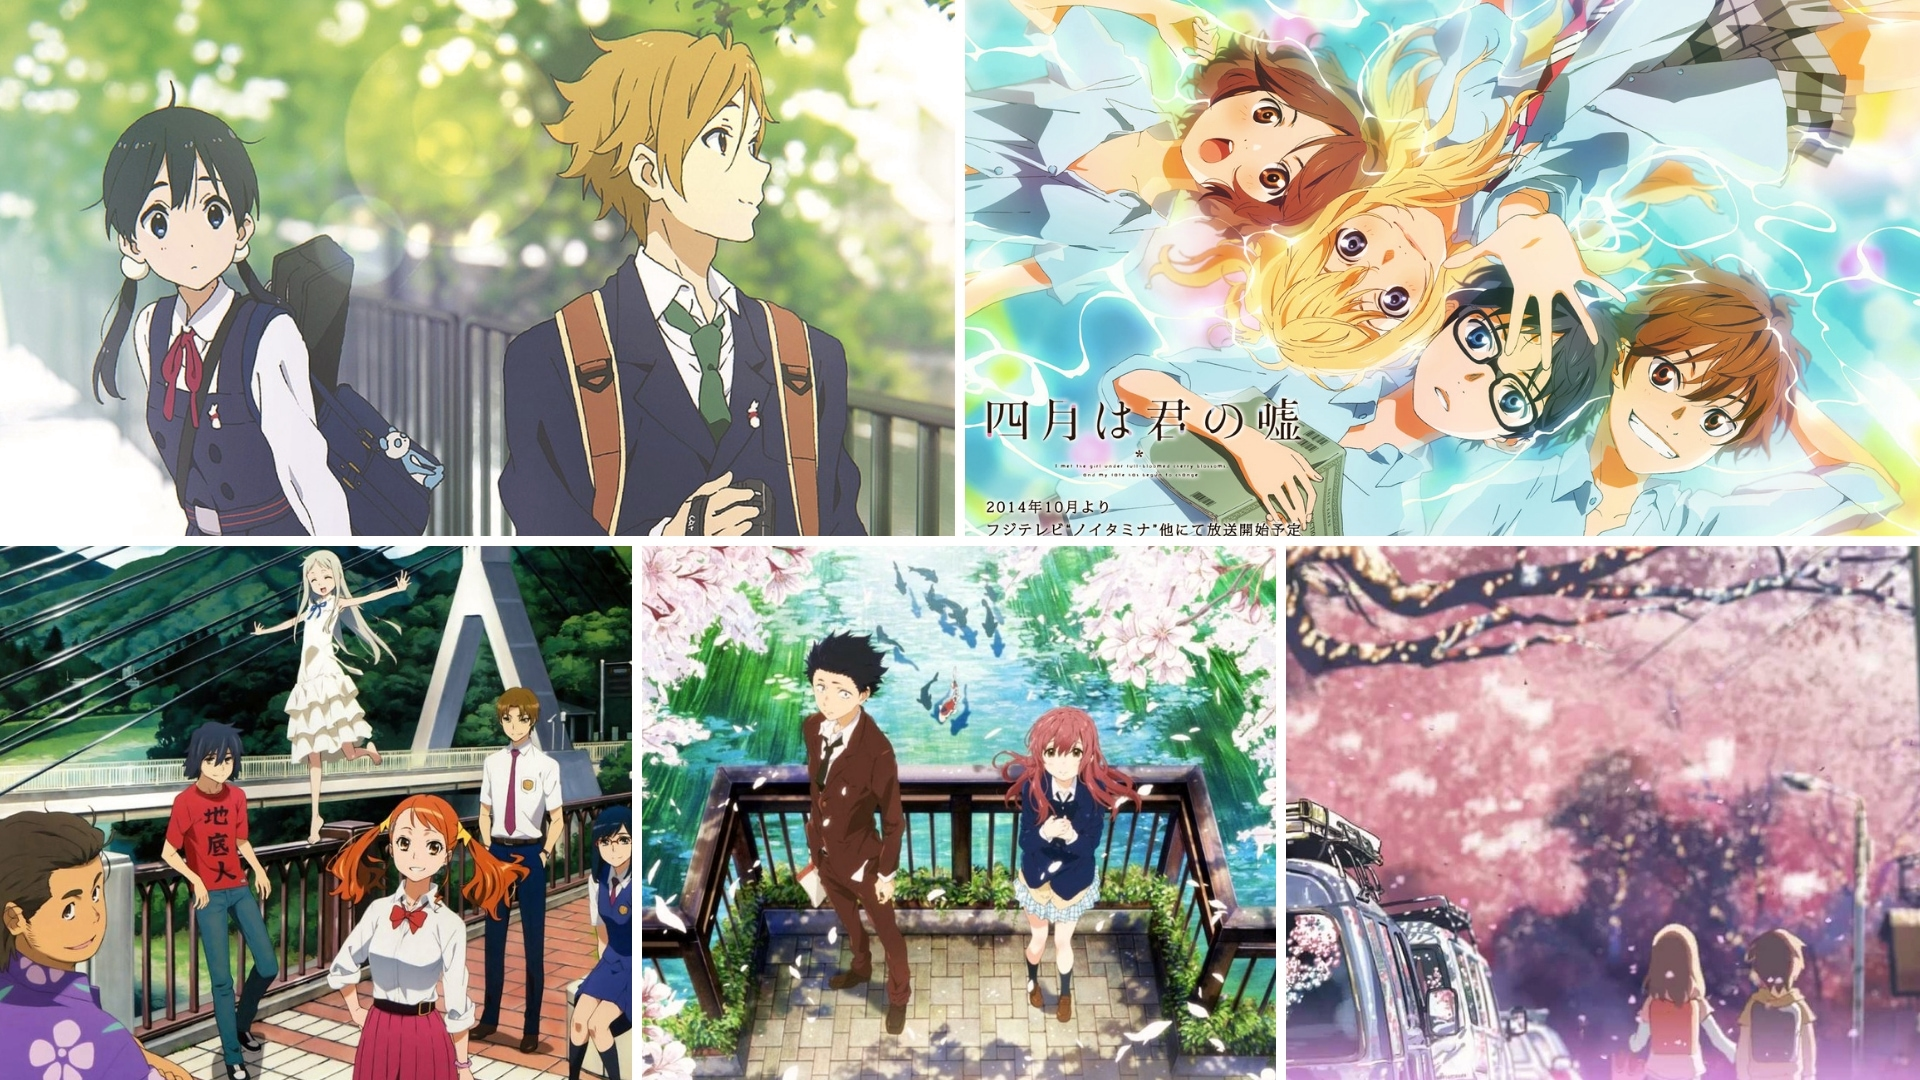 5 Romance Anime To Fill The Current Your Name Void